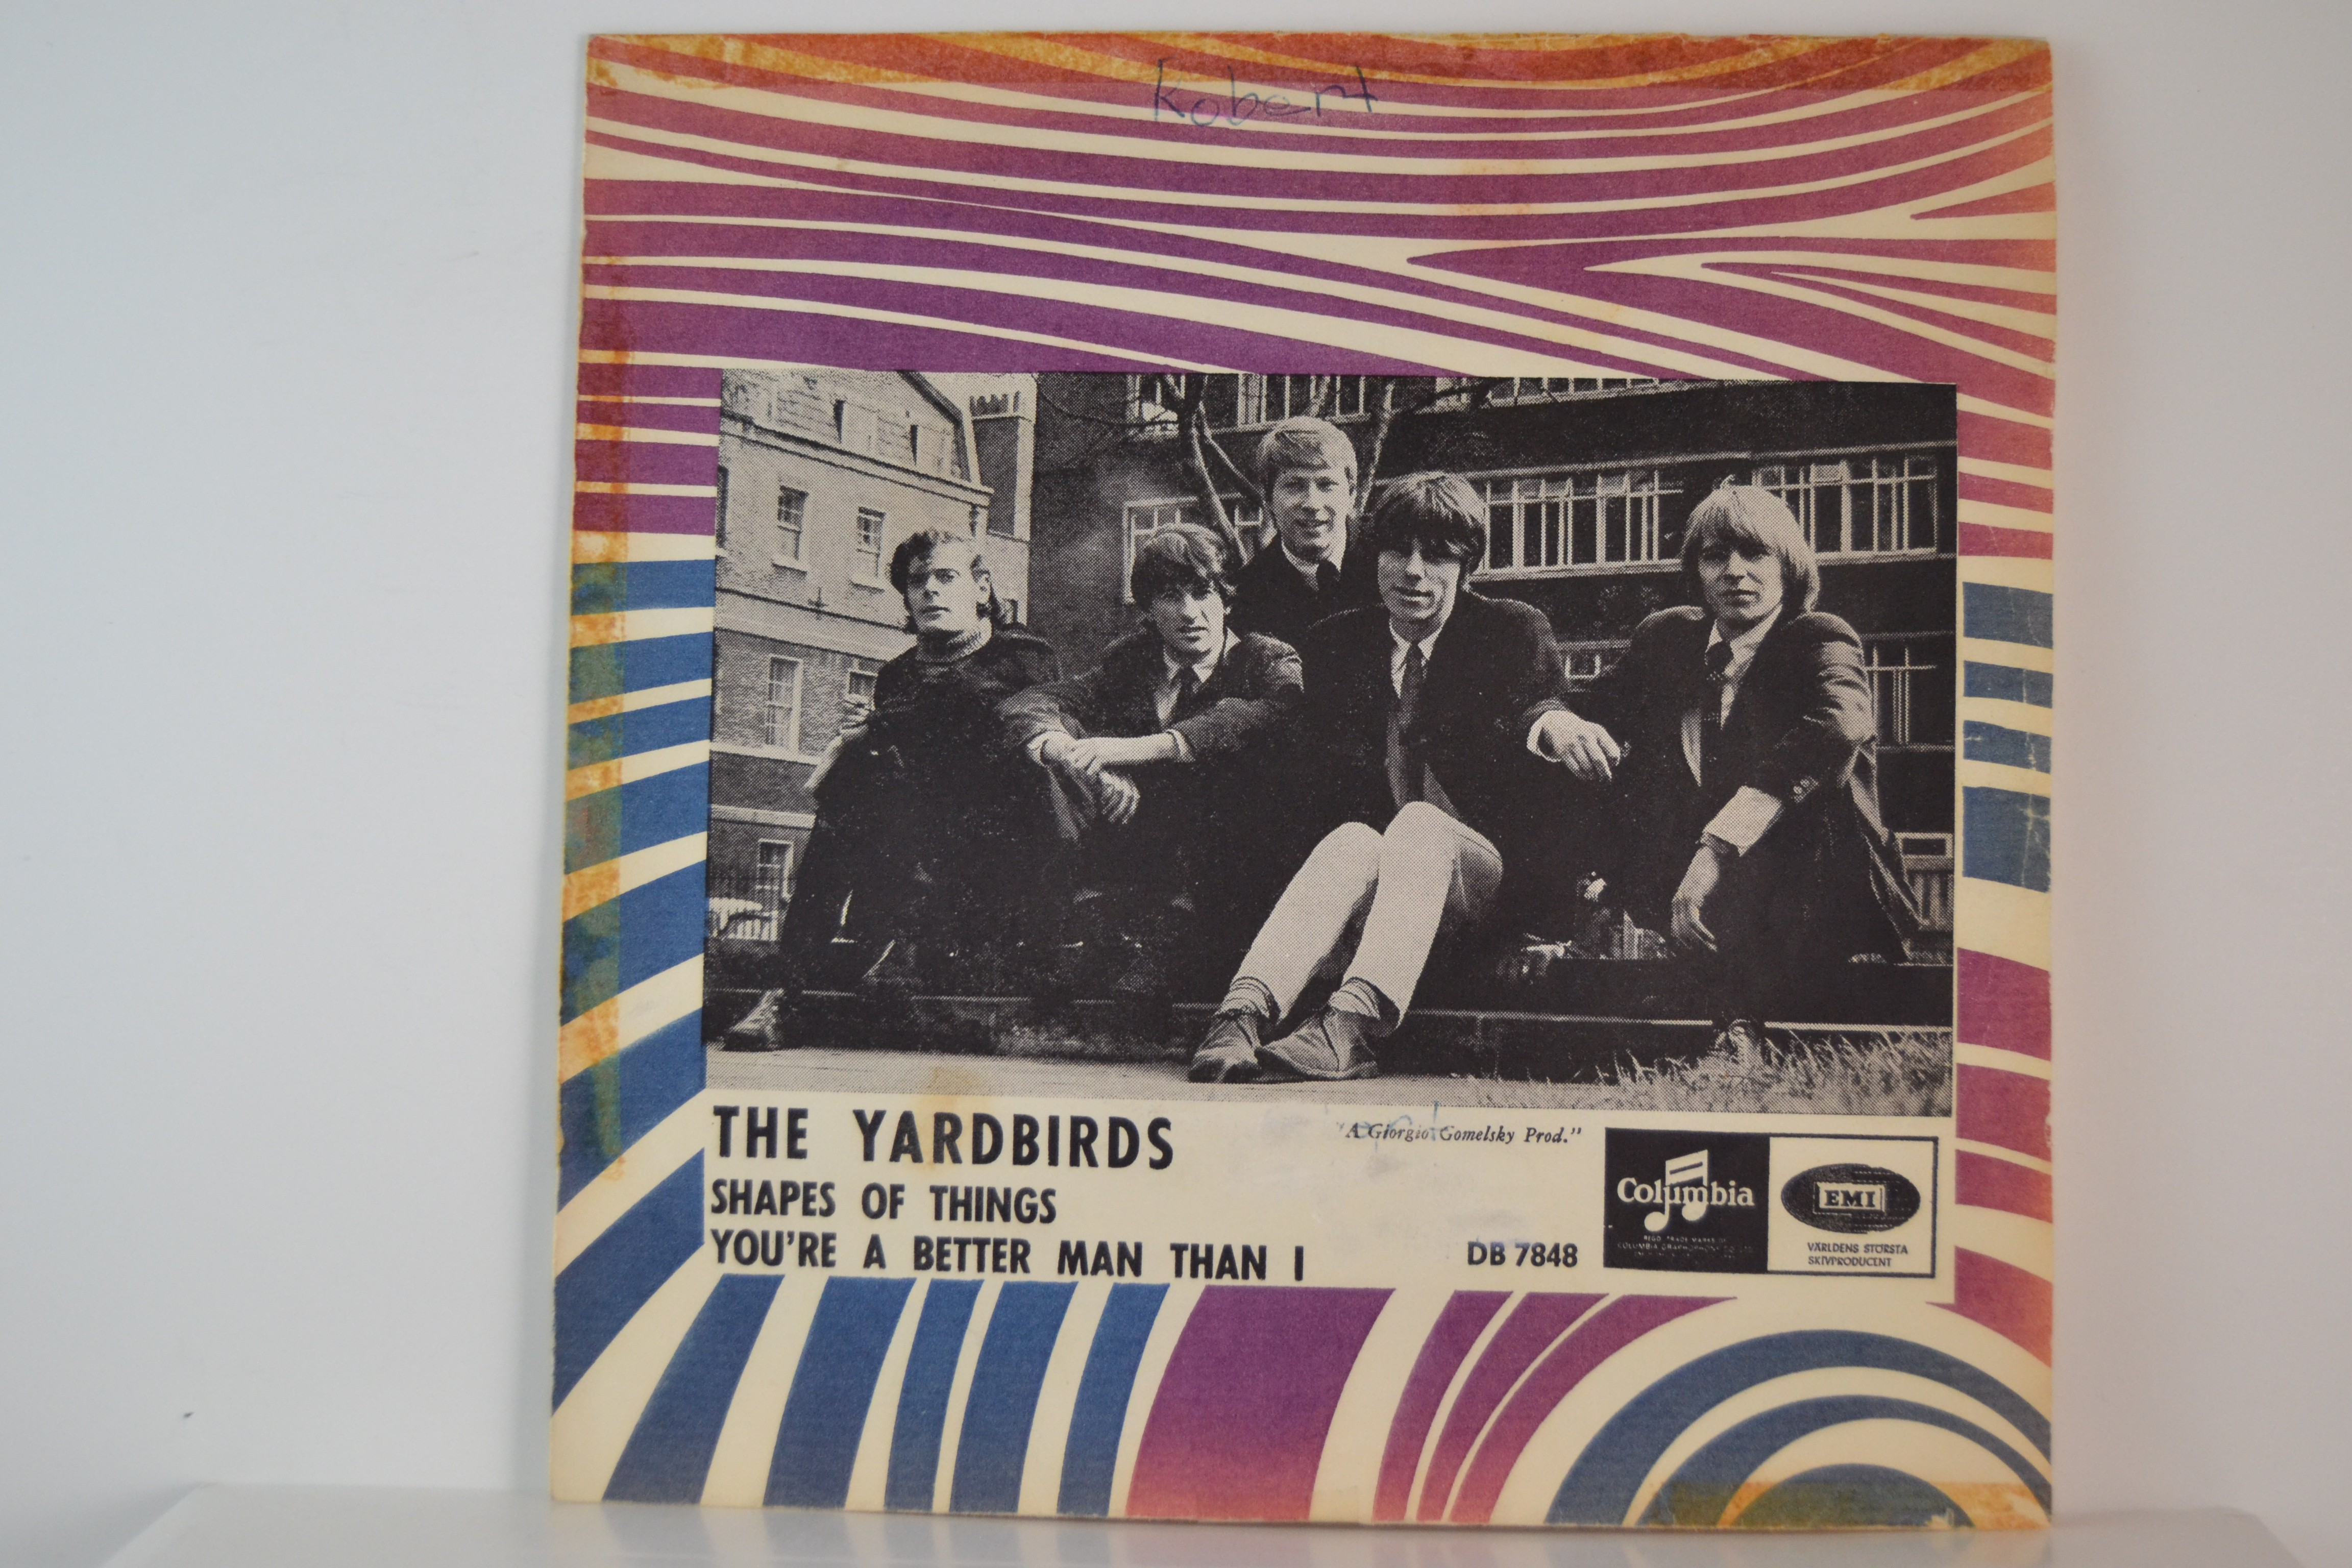 YARDBIRDS : Shapes of things / You're a better man than I